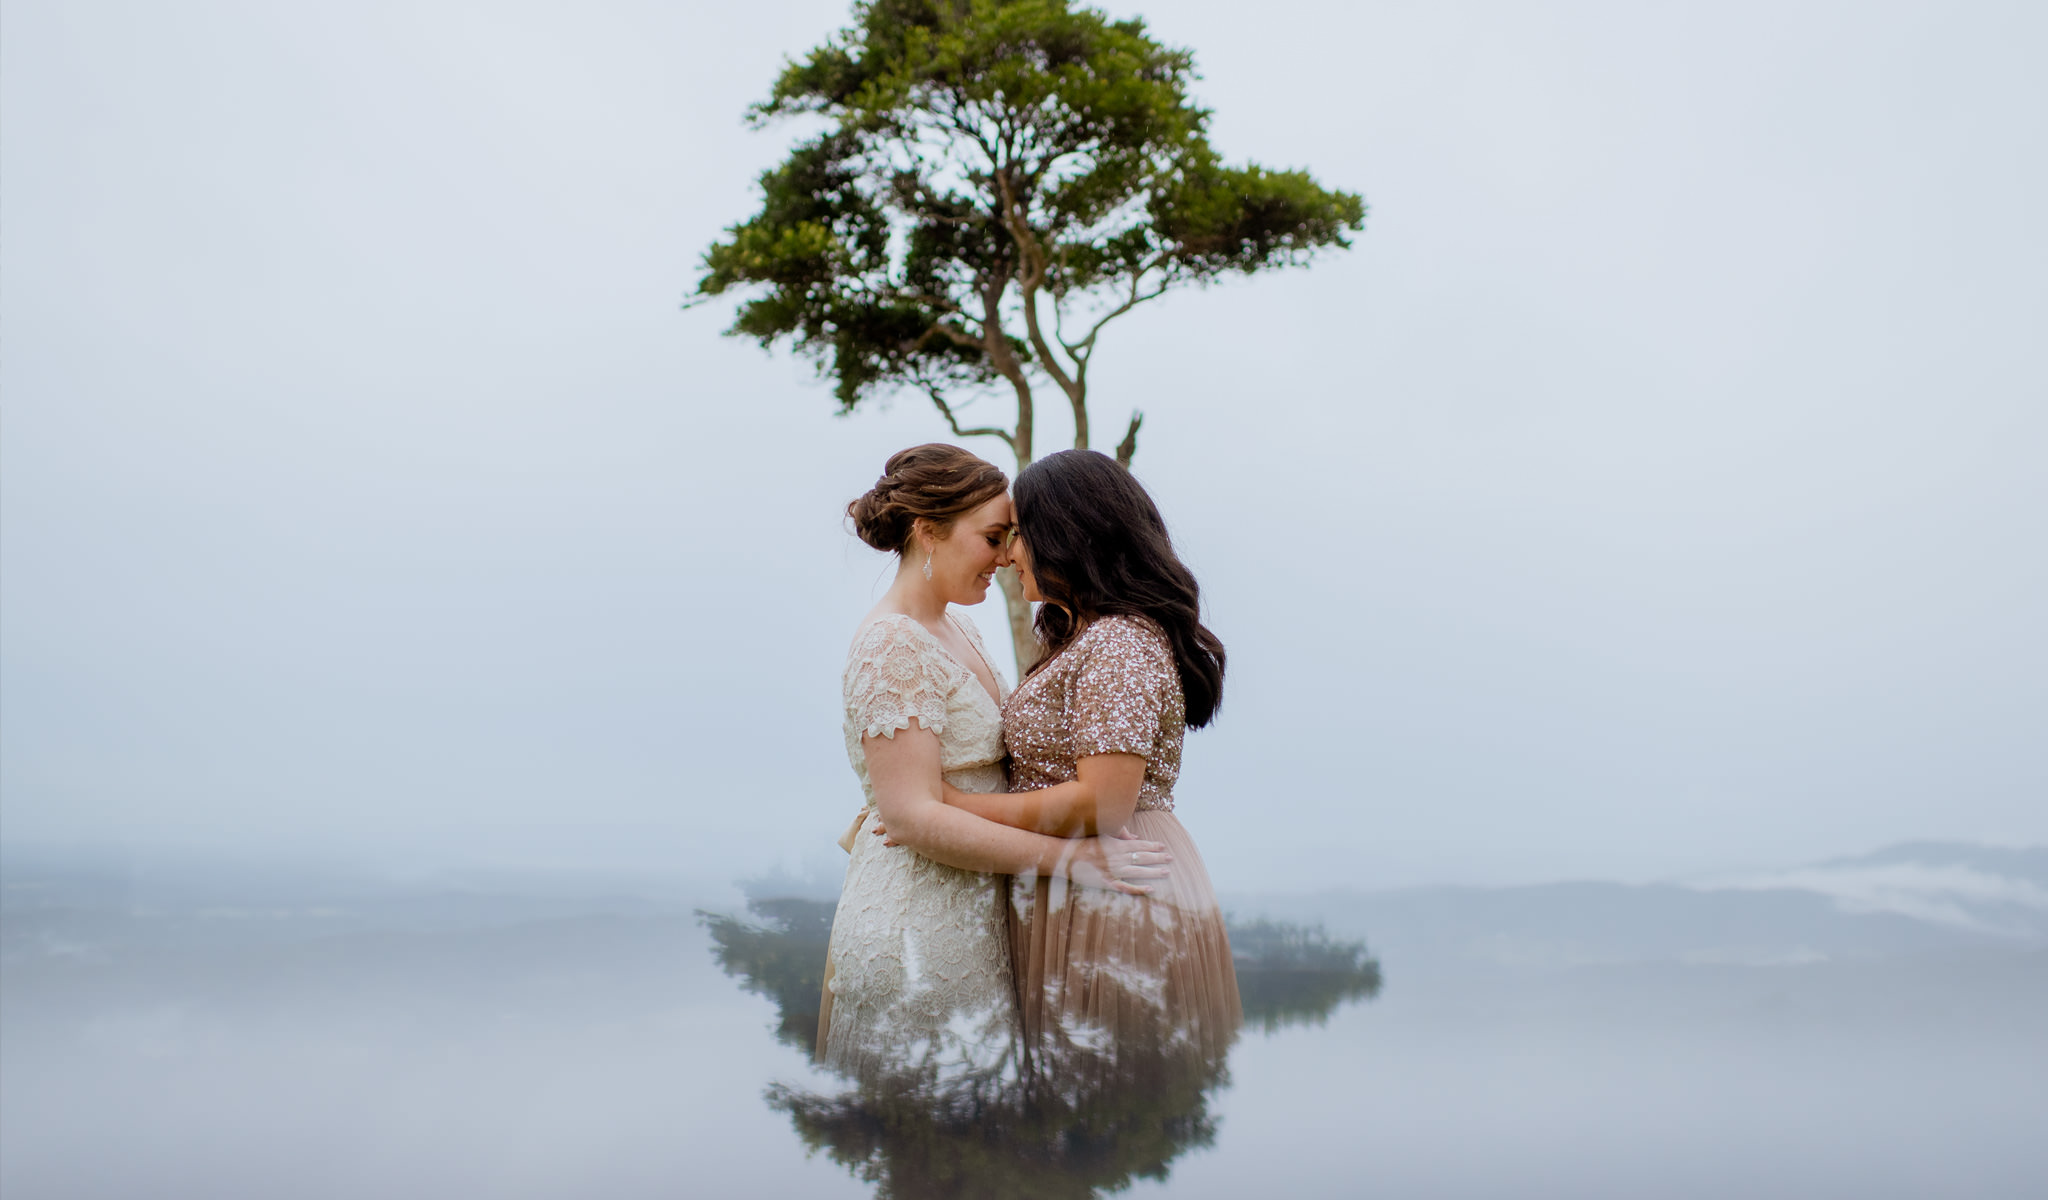 A lesbian couple putting their heads together in front of a single tree and a foggy sky